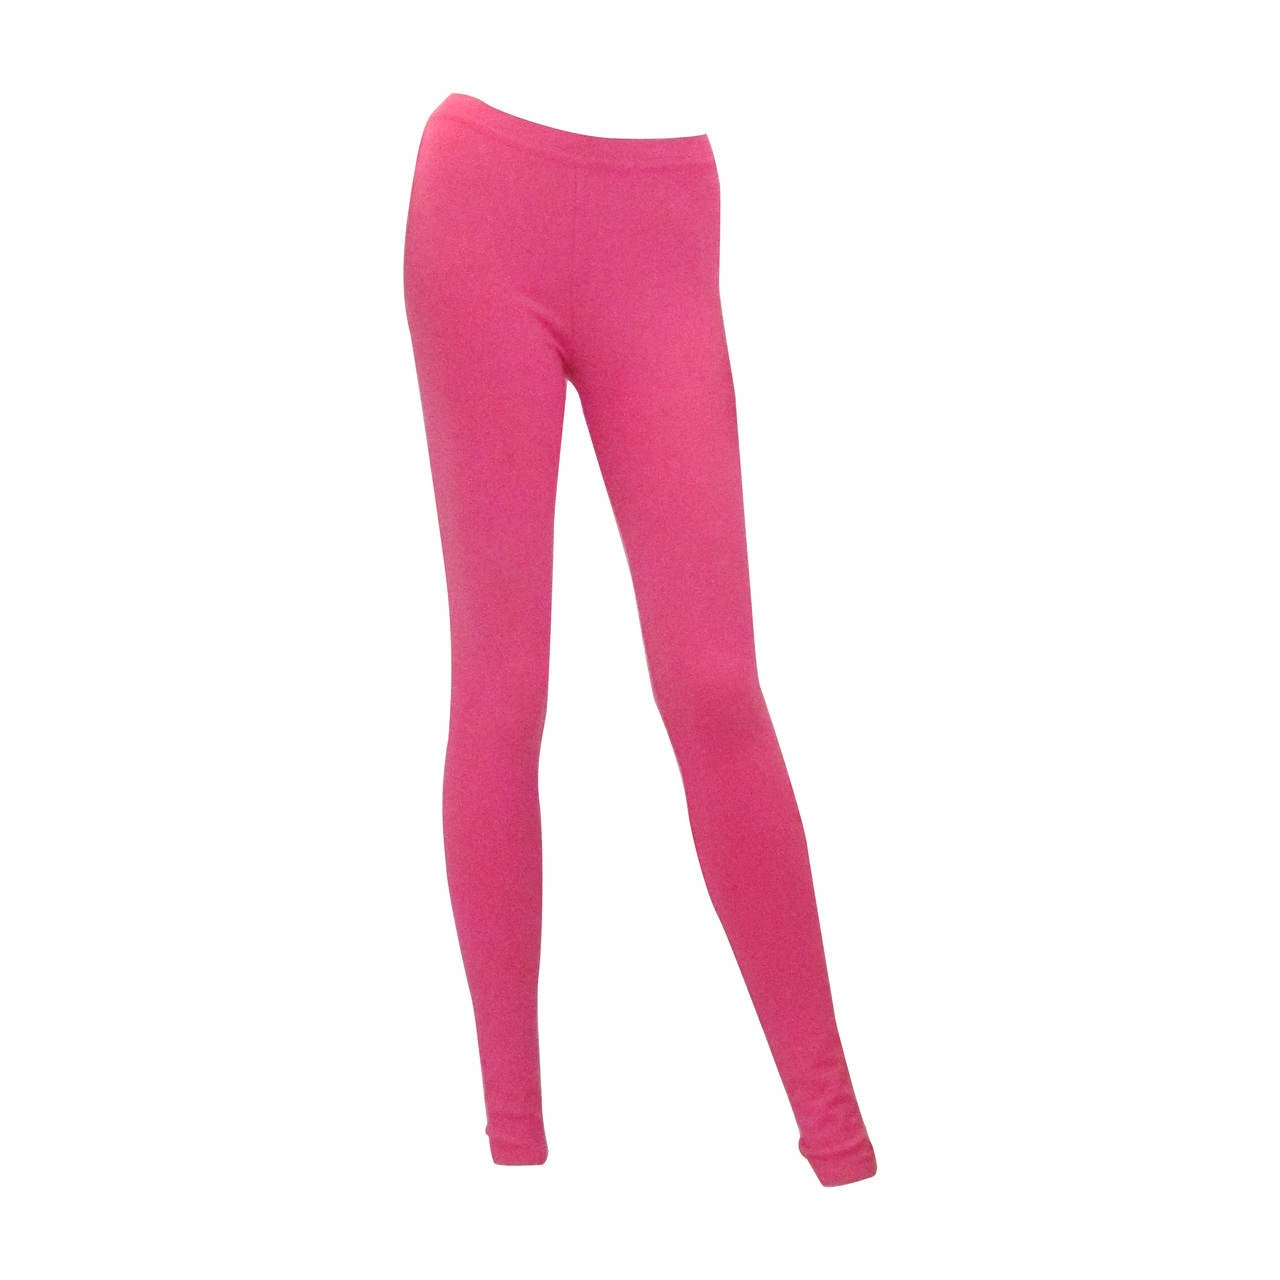 Chanel Pink Casual Pants / Leggings For Sale